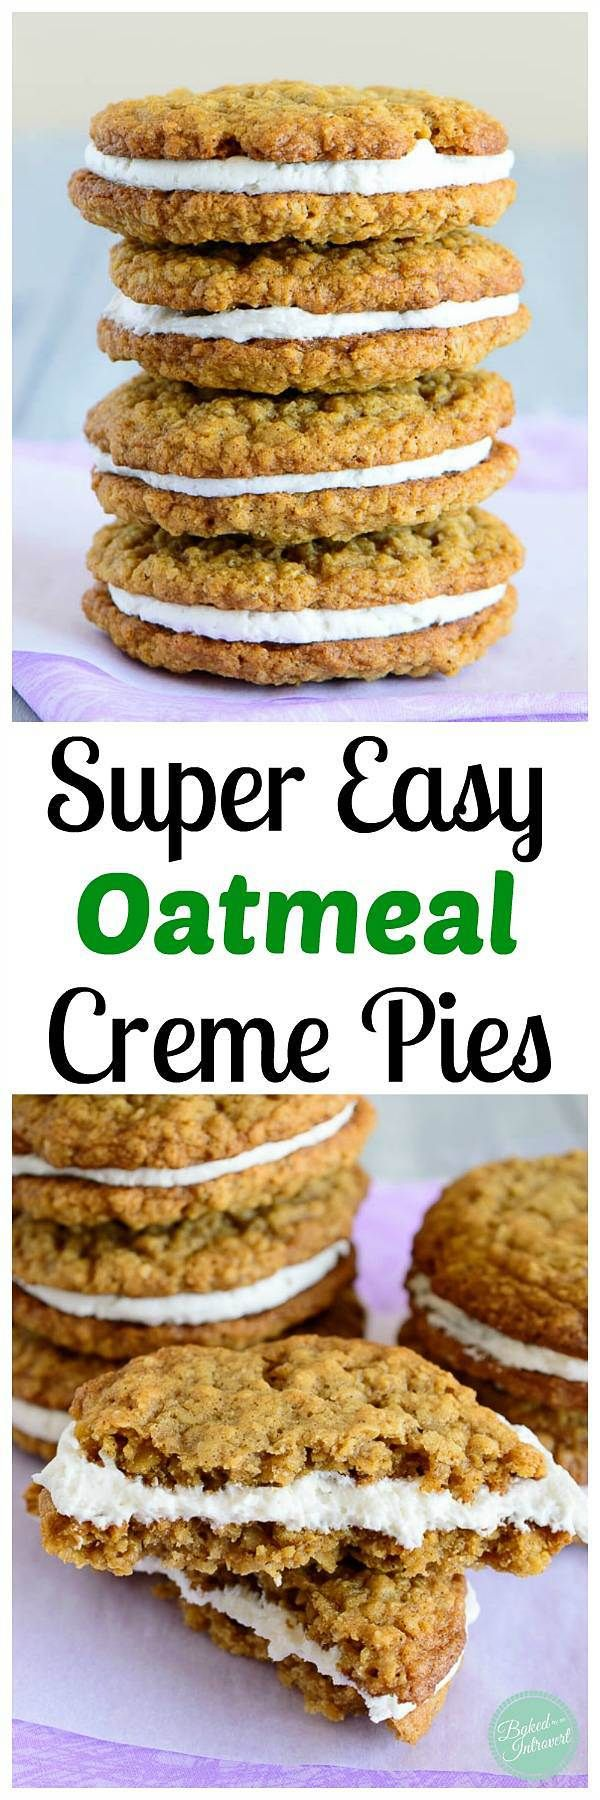 Oatmeal Creme Pie - Super simple oatmeal creme pie recipe that taste just like a Little Debbie!